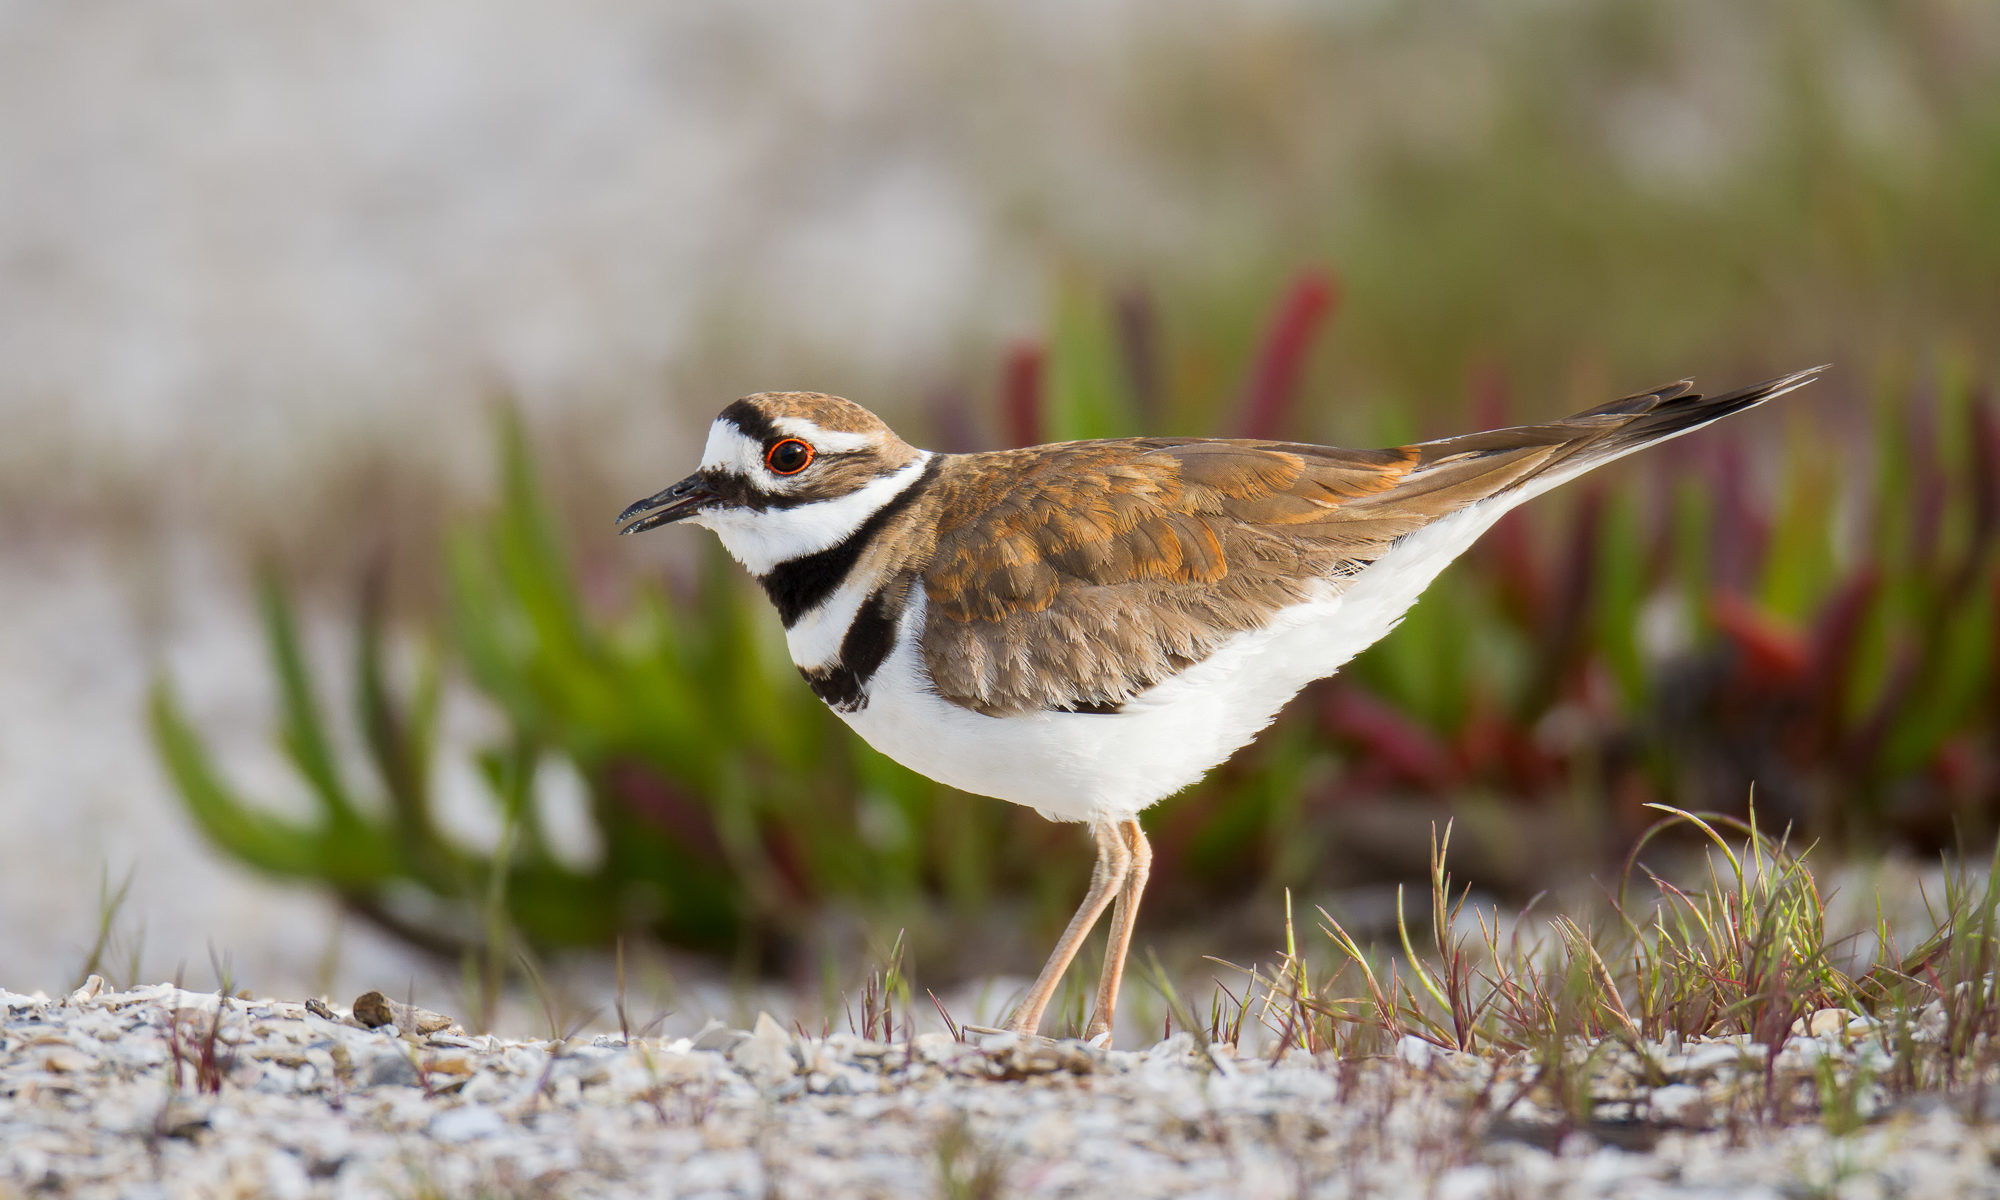 A killdeer stands in the sun on the broken shells that give name to Shell Beach in Foster City, CA